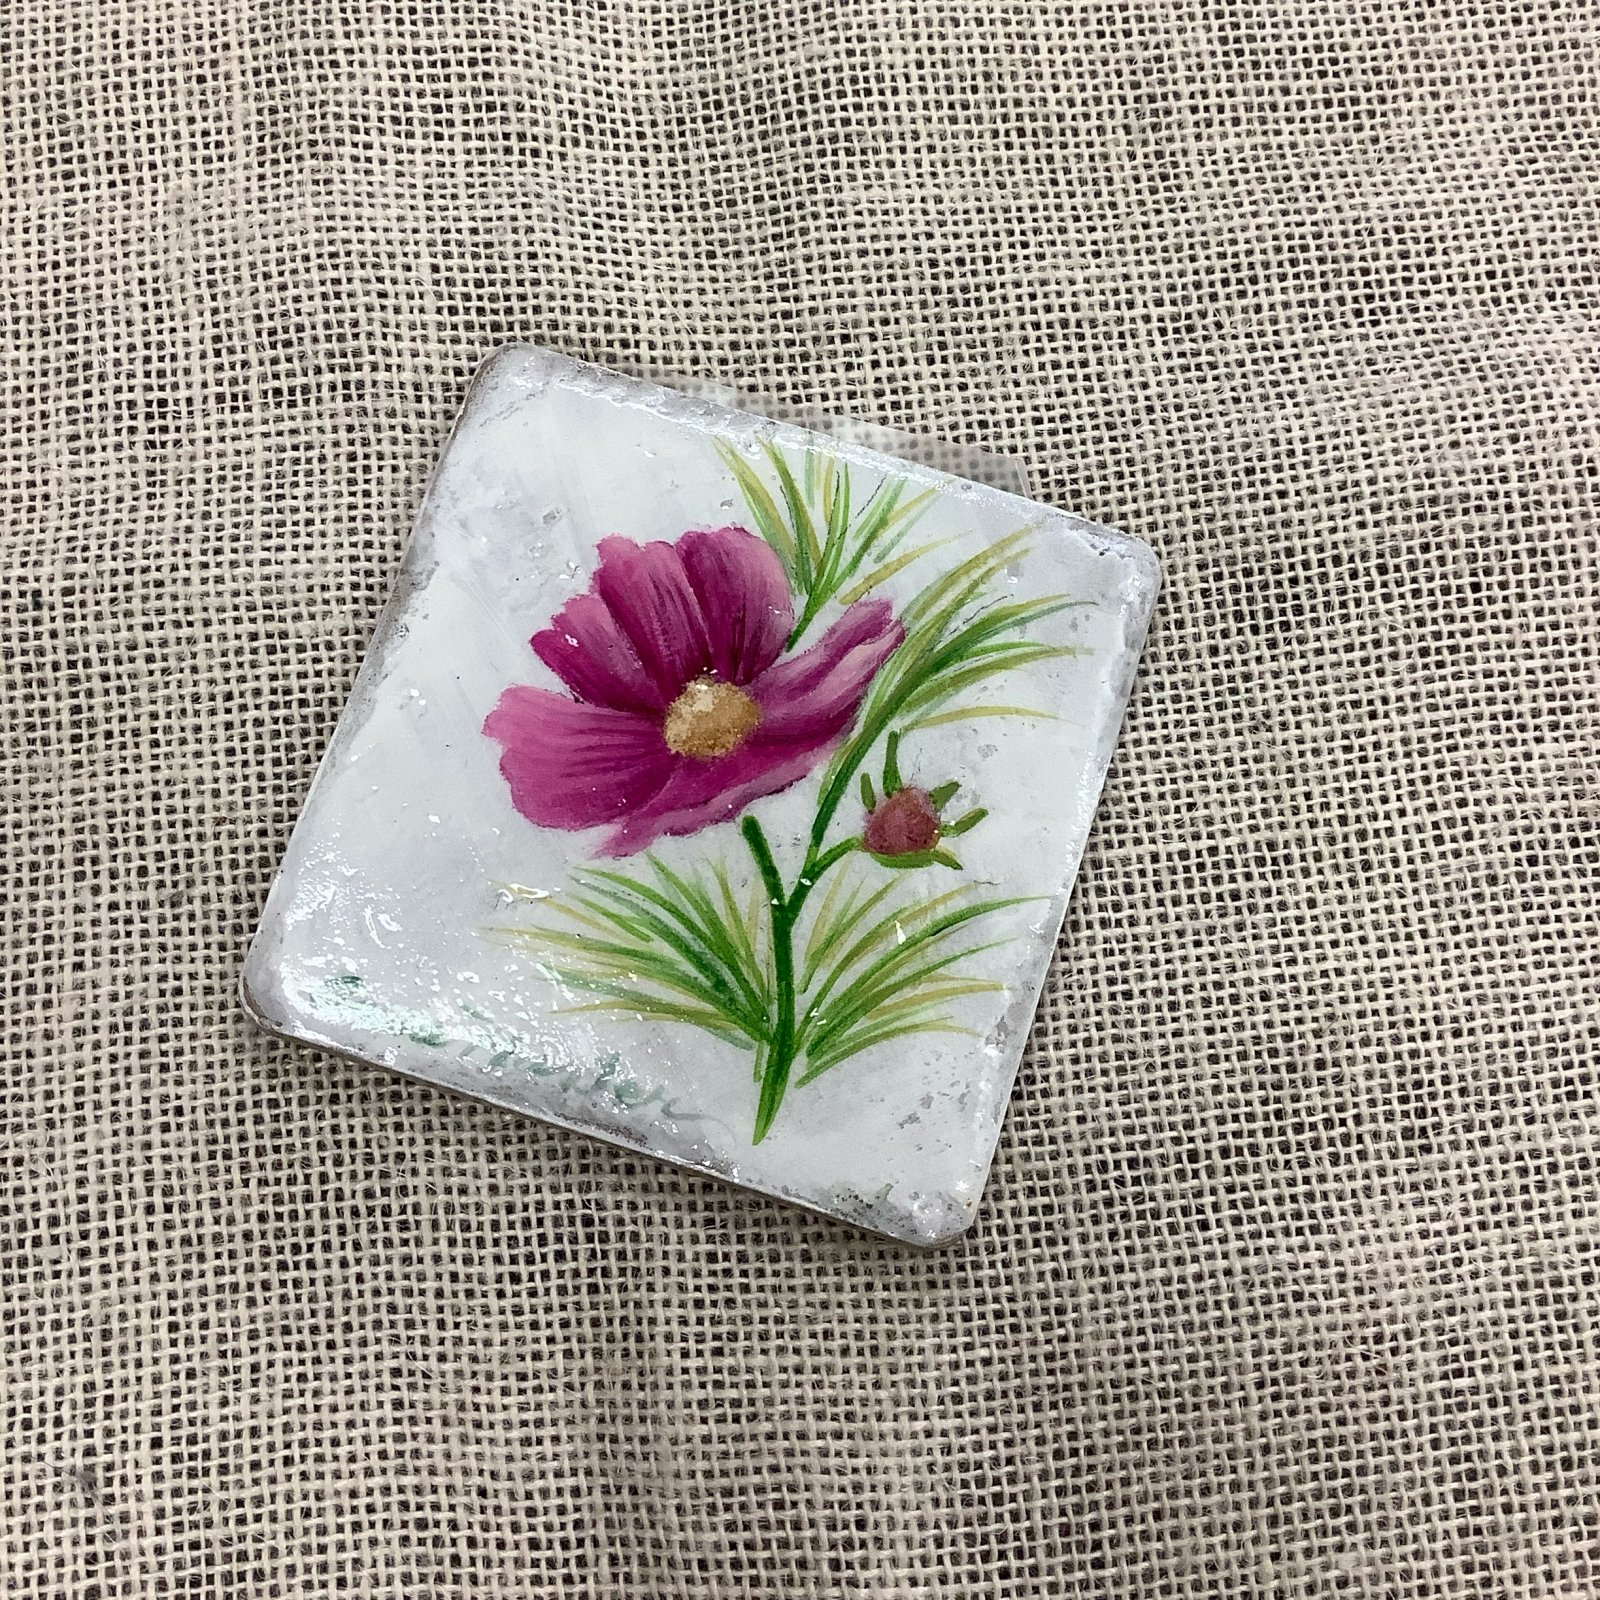 15-Floral Coasters/Tiles